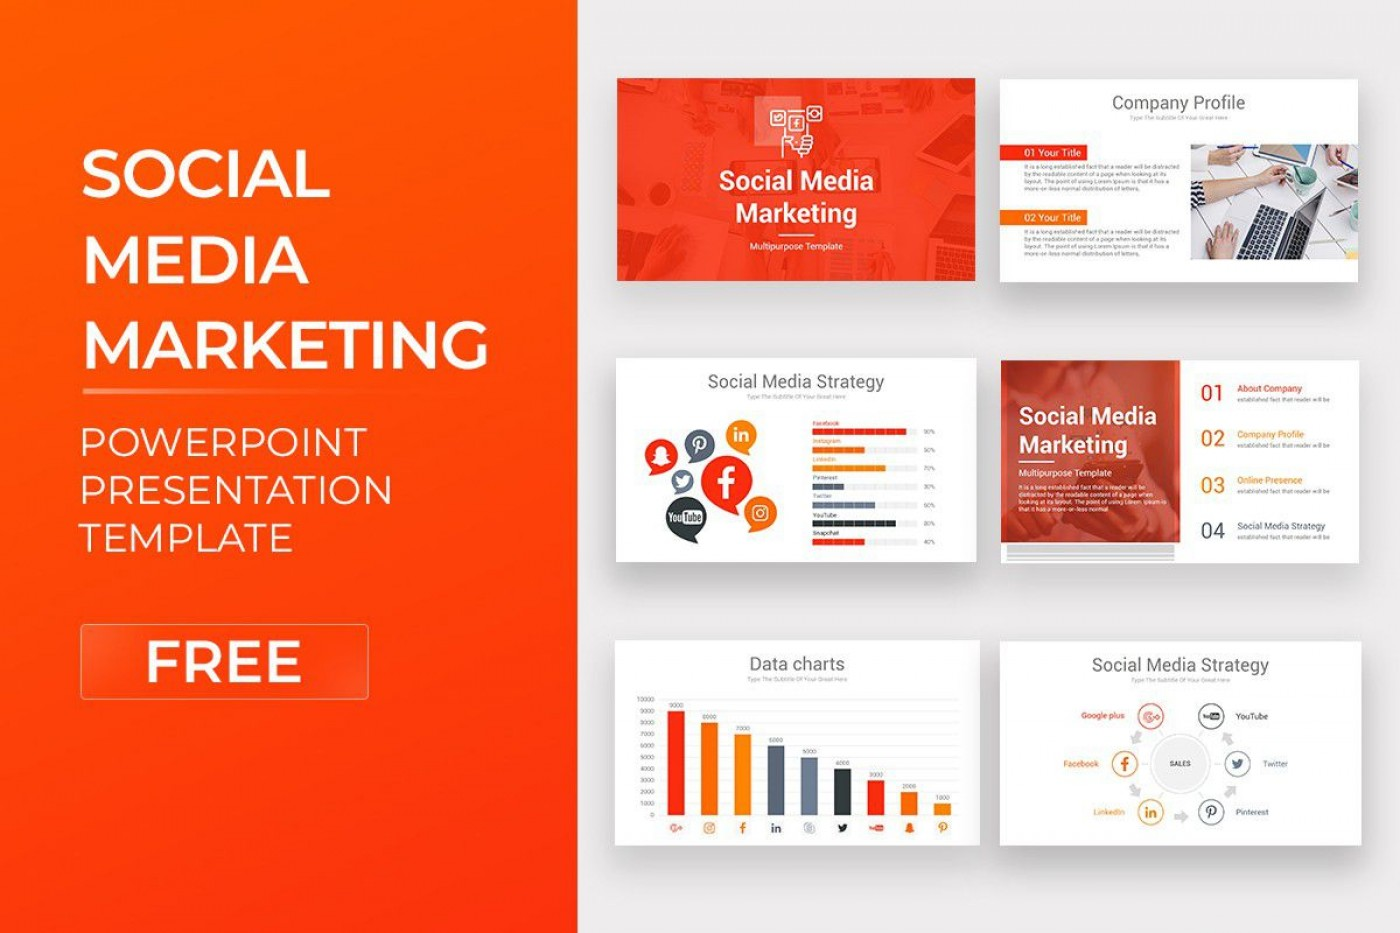 007 Sensational Social Media Marketing Template Picture  Free Wordpres Ppt1400